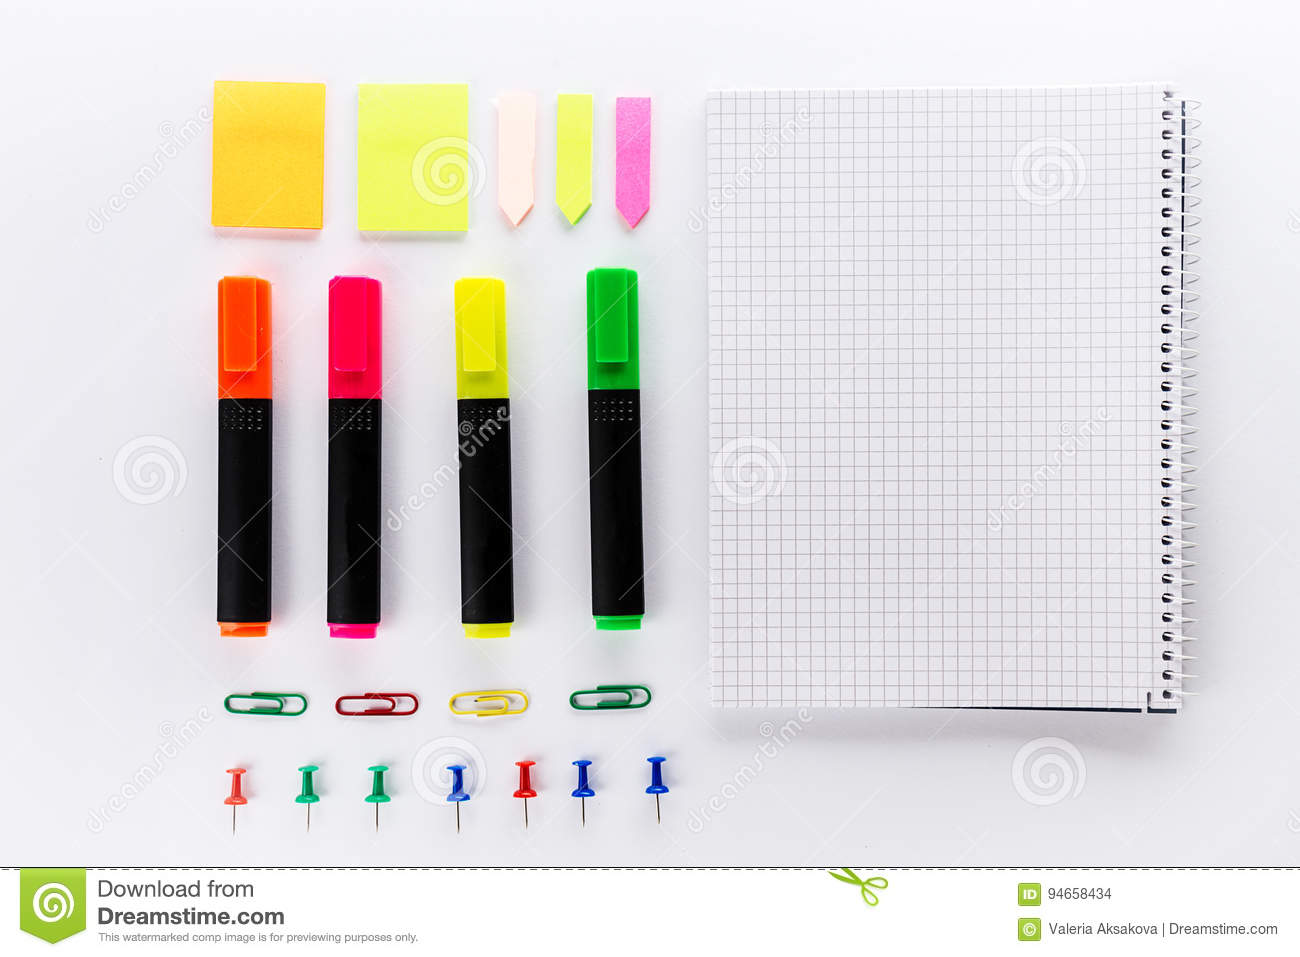 Different Colorful Markers With Office Accessories On White Office Table Top View Work Study Concept Flat Lay Stock Photo Image Of Creativity Leadership 94658434